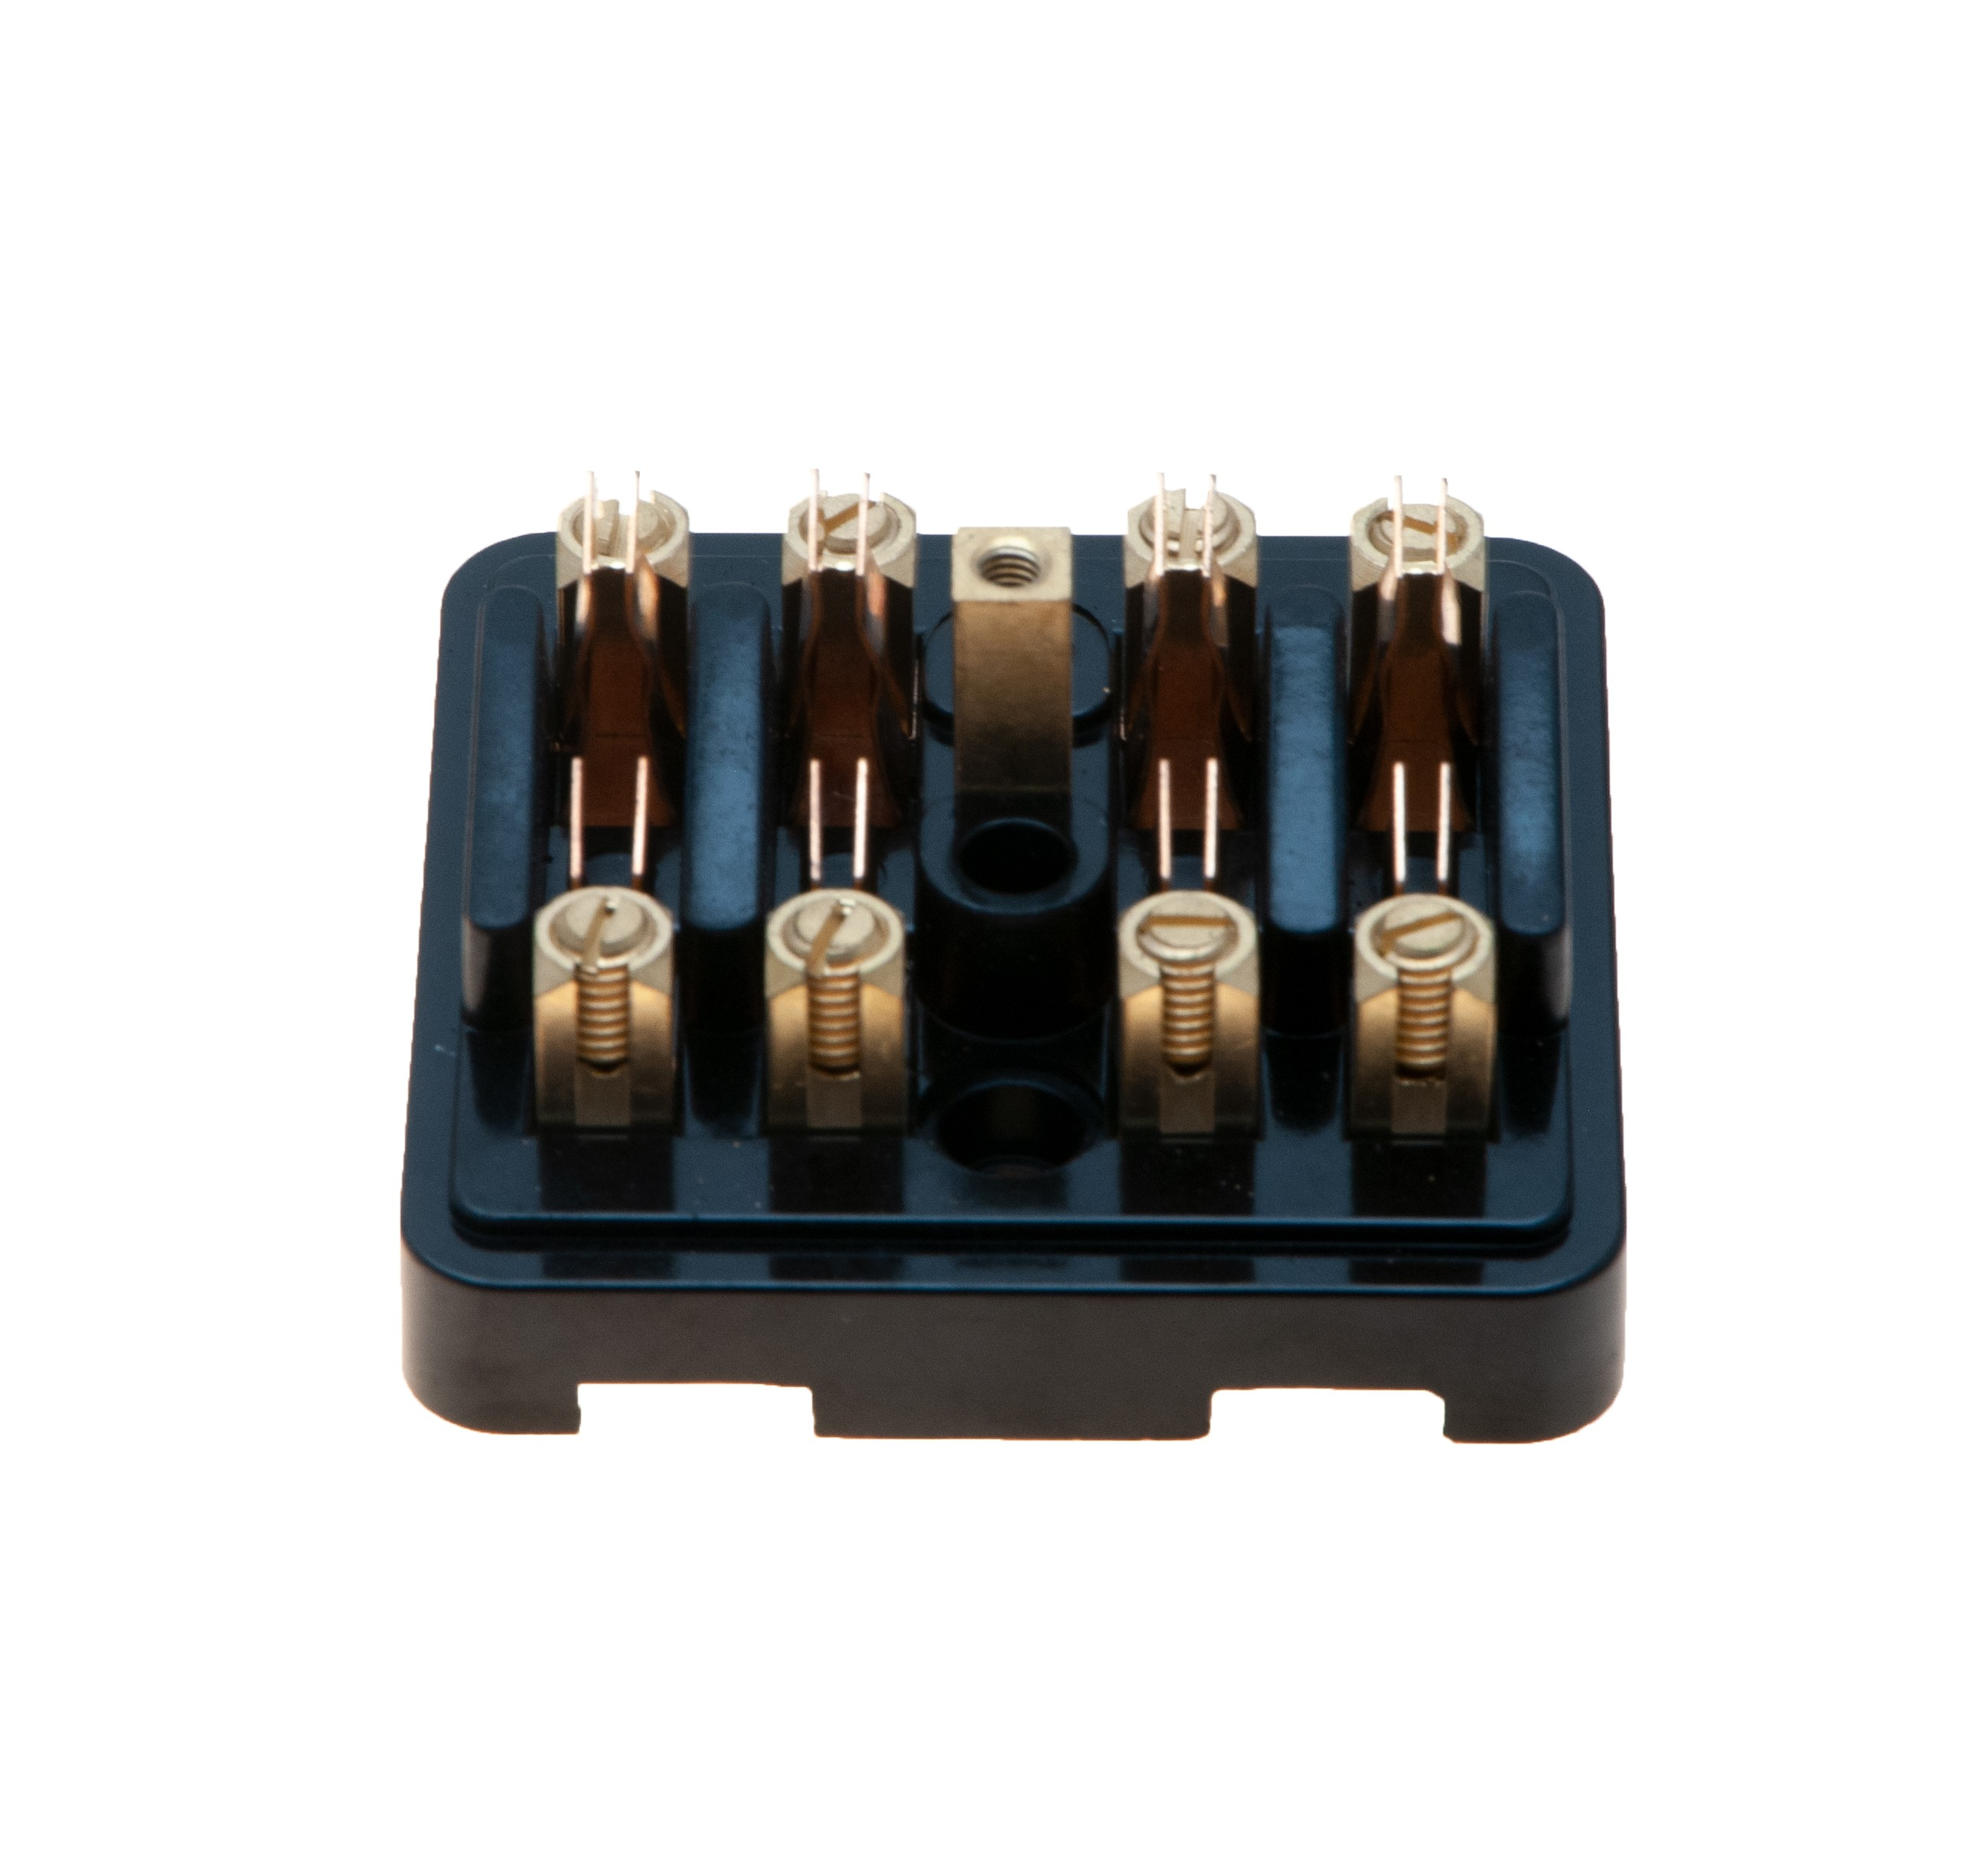 sf4 type fuse box for four glass type fuses repro for. Black Bedroom Furniture Sets. Home Design Ideas